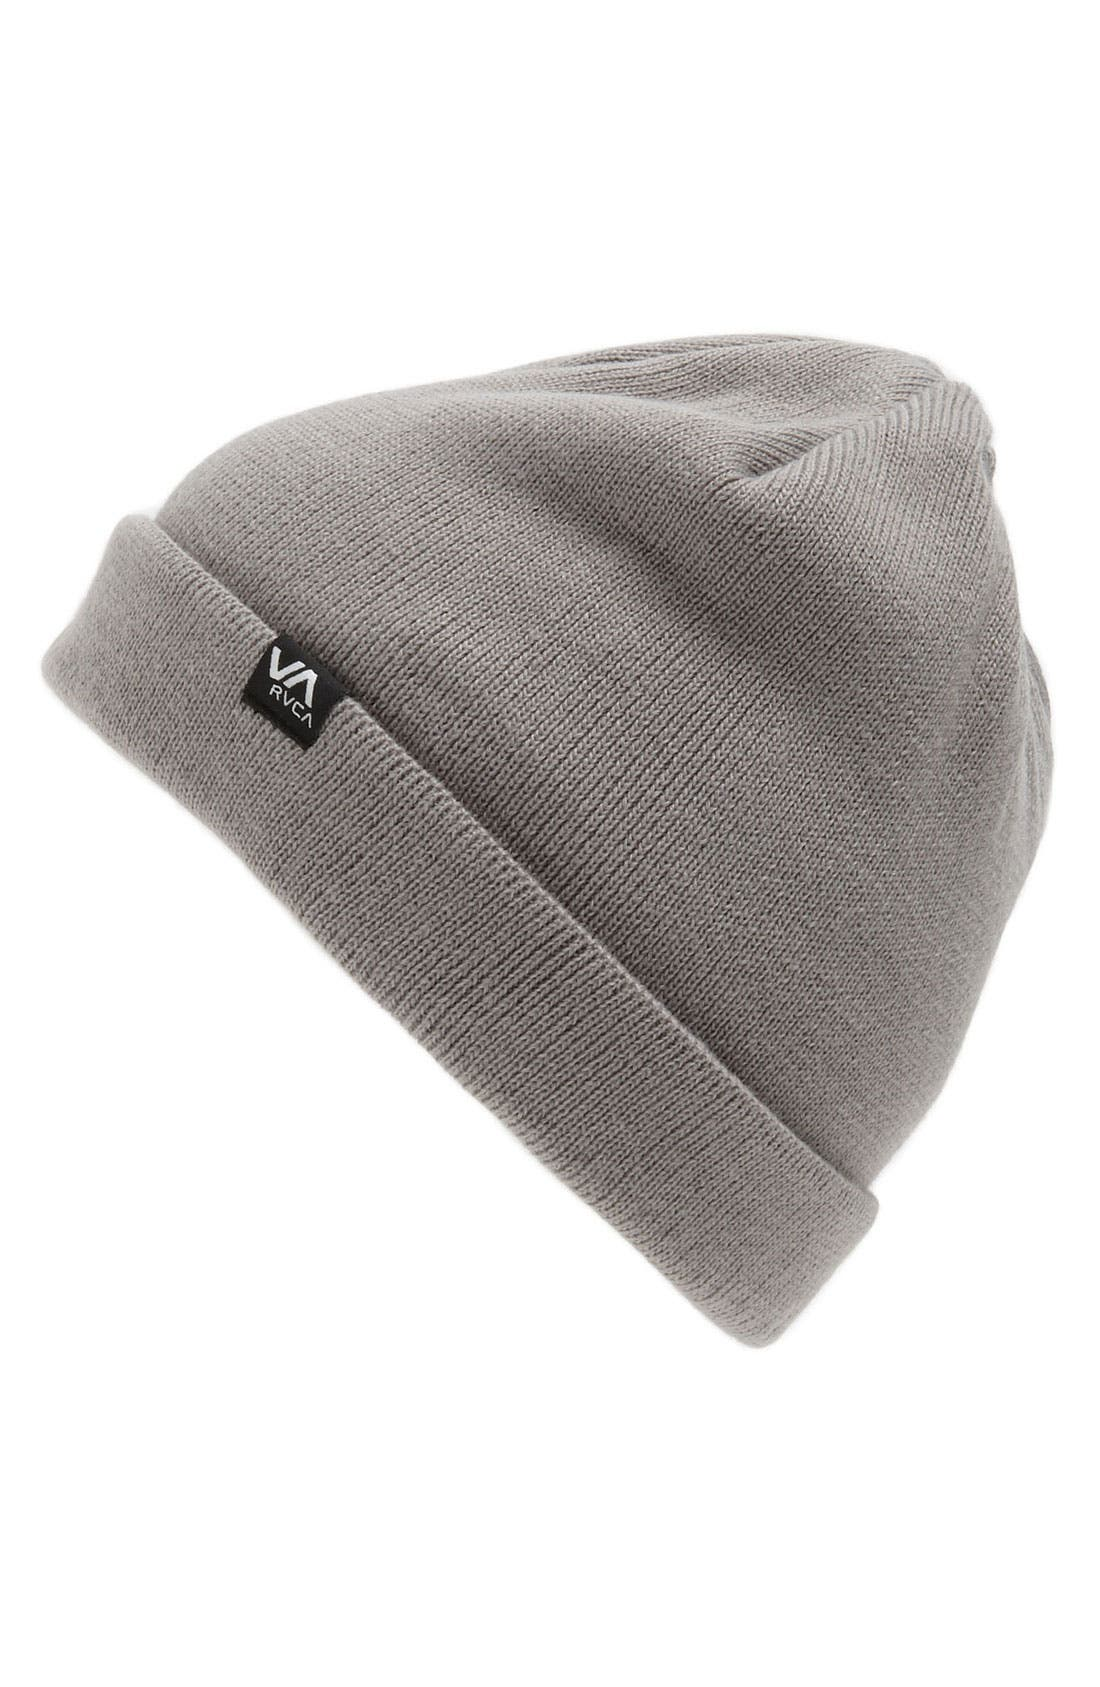 Alternate Image 1 Selected - RVCA 'Scrap' Knit Cap